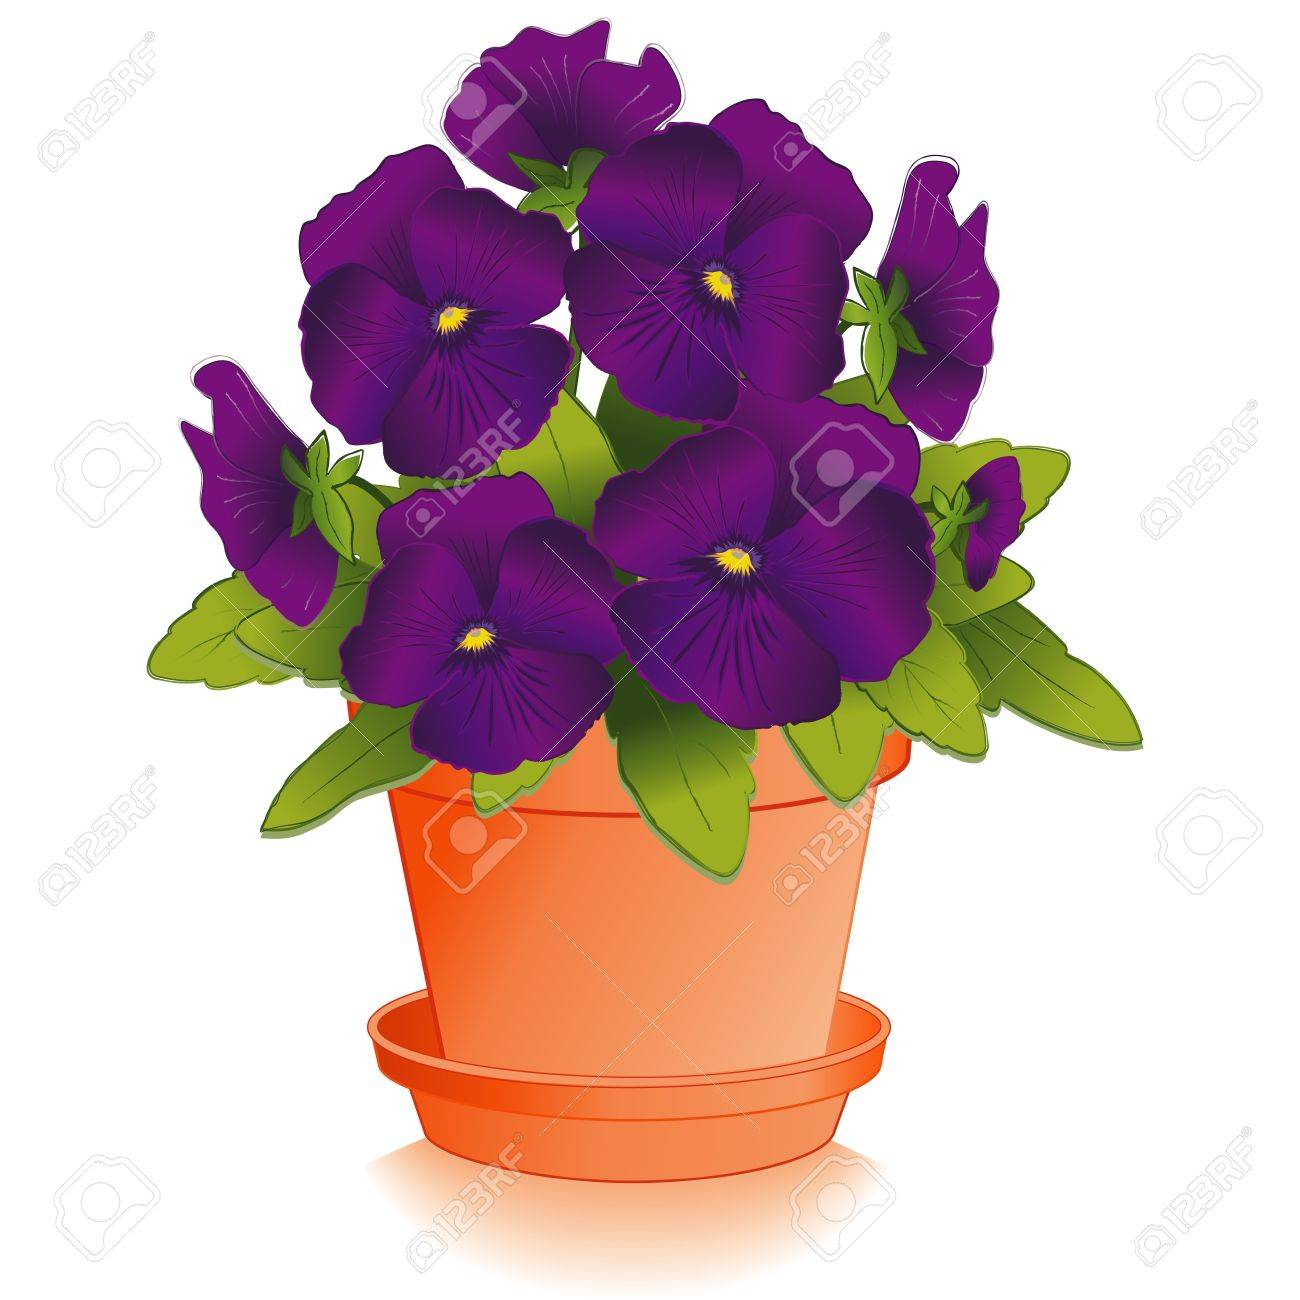 Purple Pansy Flowers in Clay Flowerpot Stock Vector - 12392271